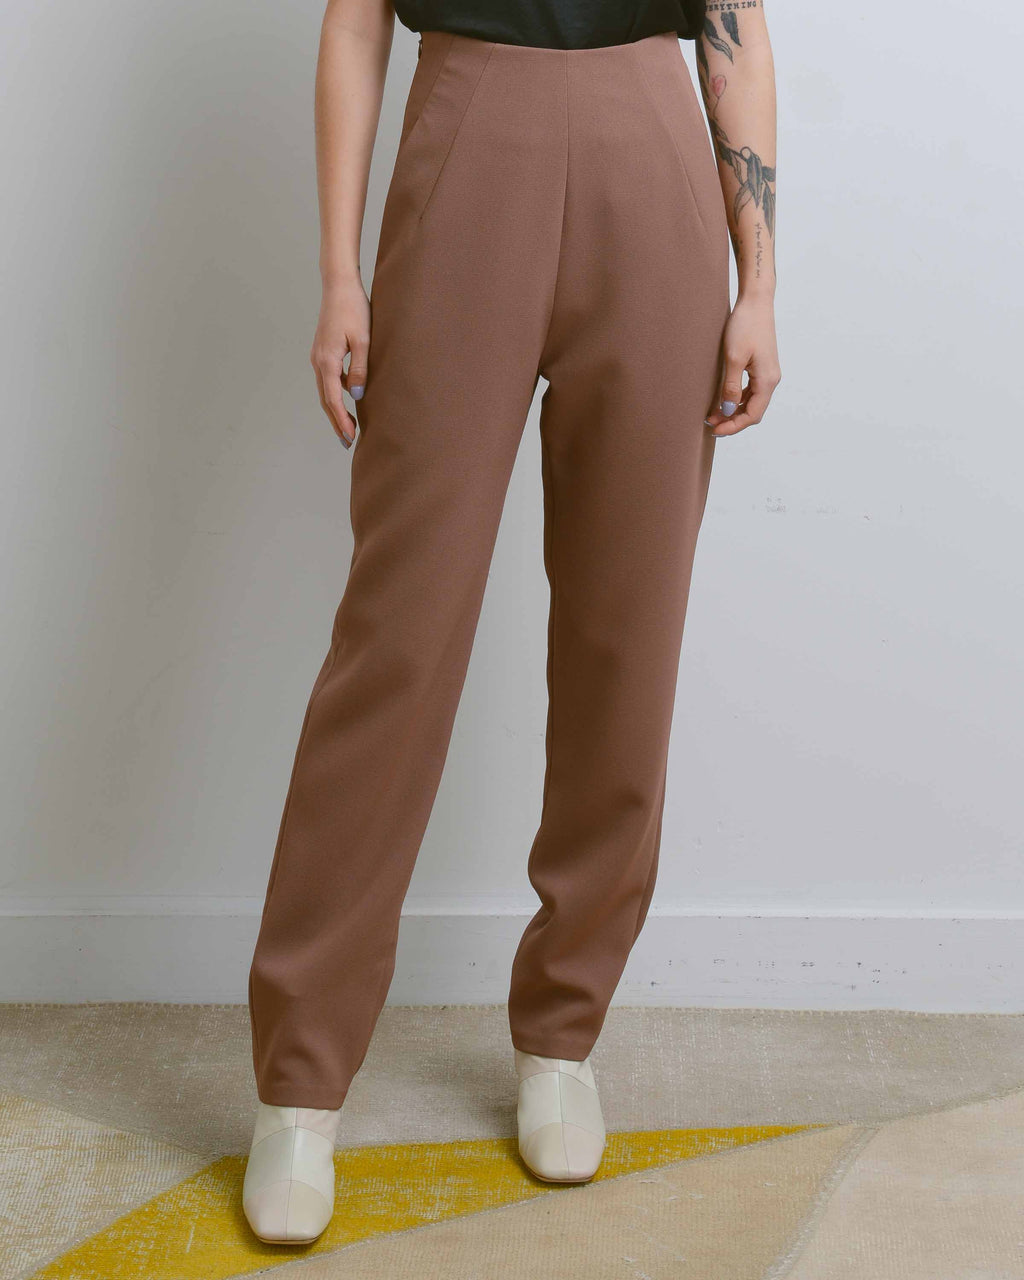 Cacao Sam High-Waisted Pocket Pant